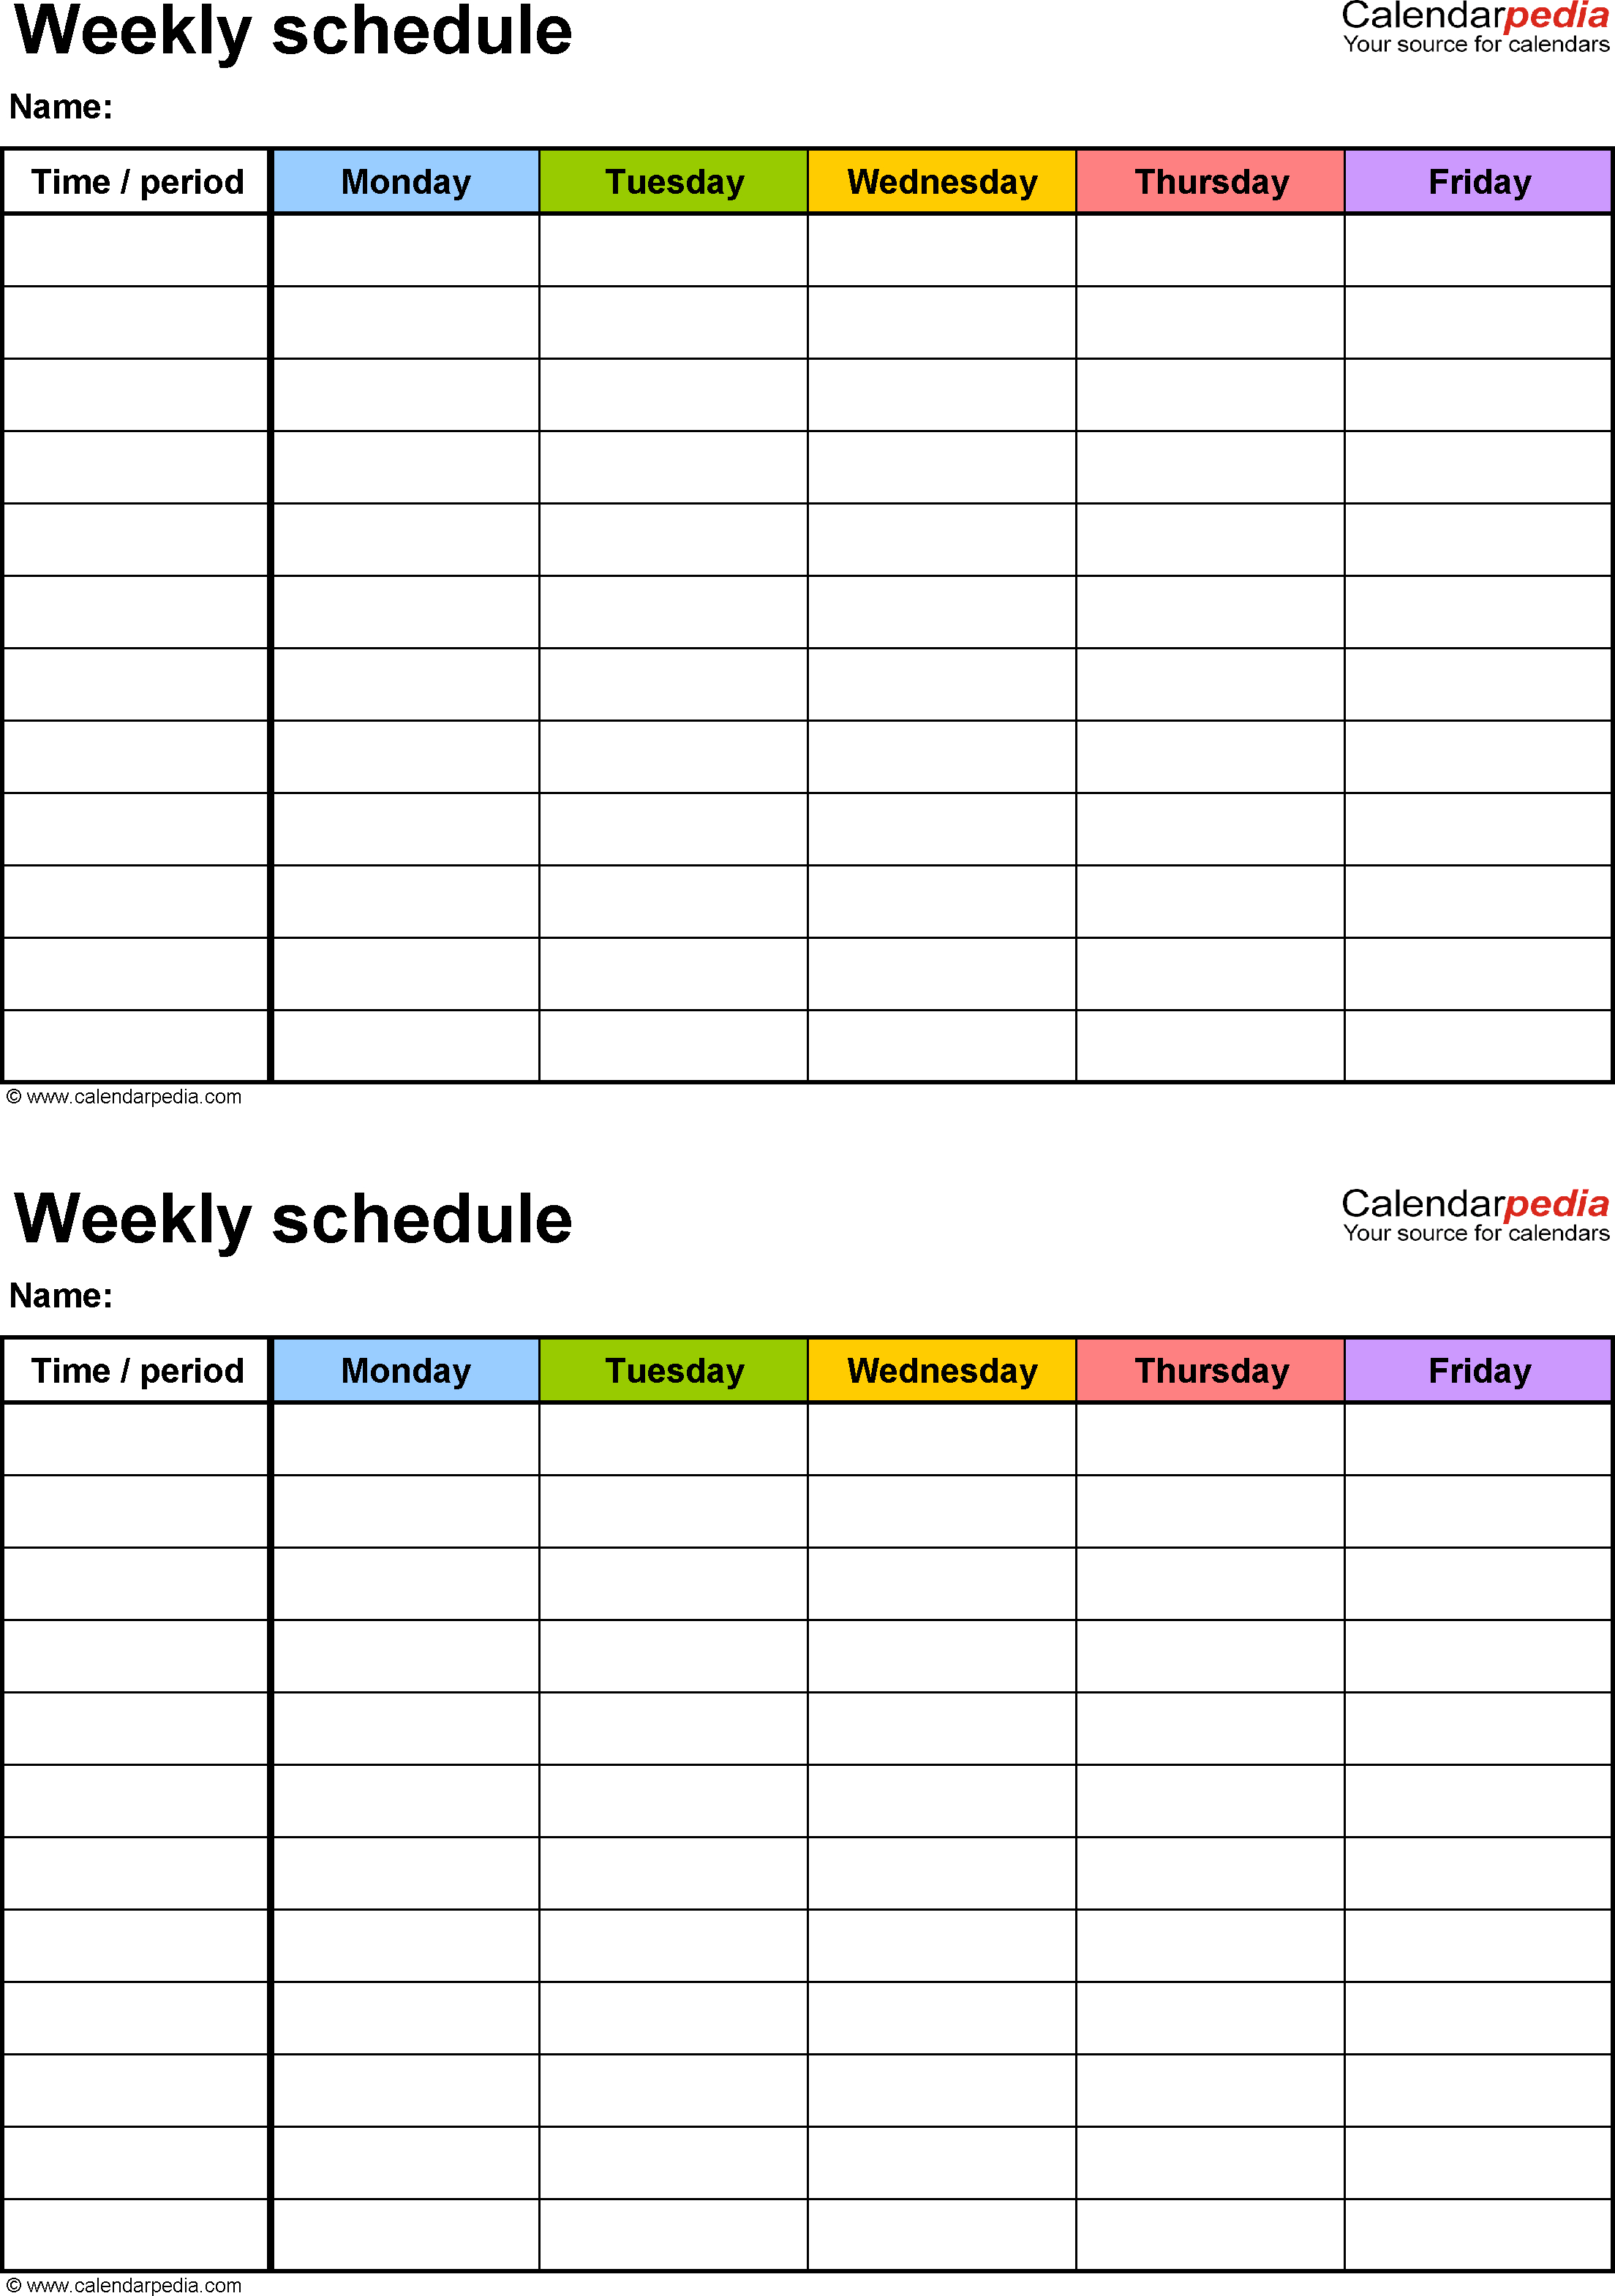 Free Weekly Schedule Templates For Word - 18 Templates throughout Summer Camp Schedule Template Blank